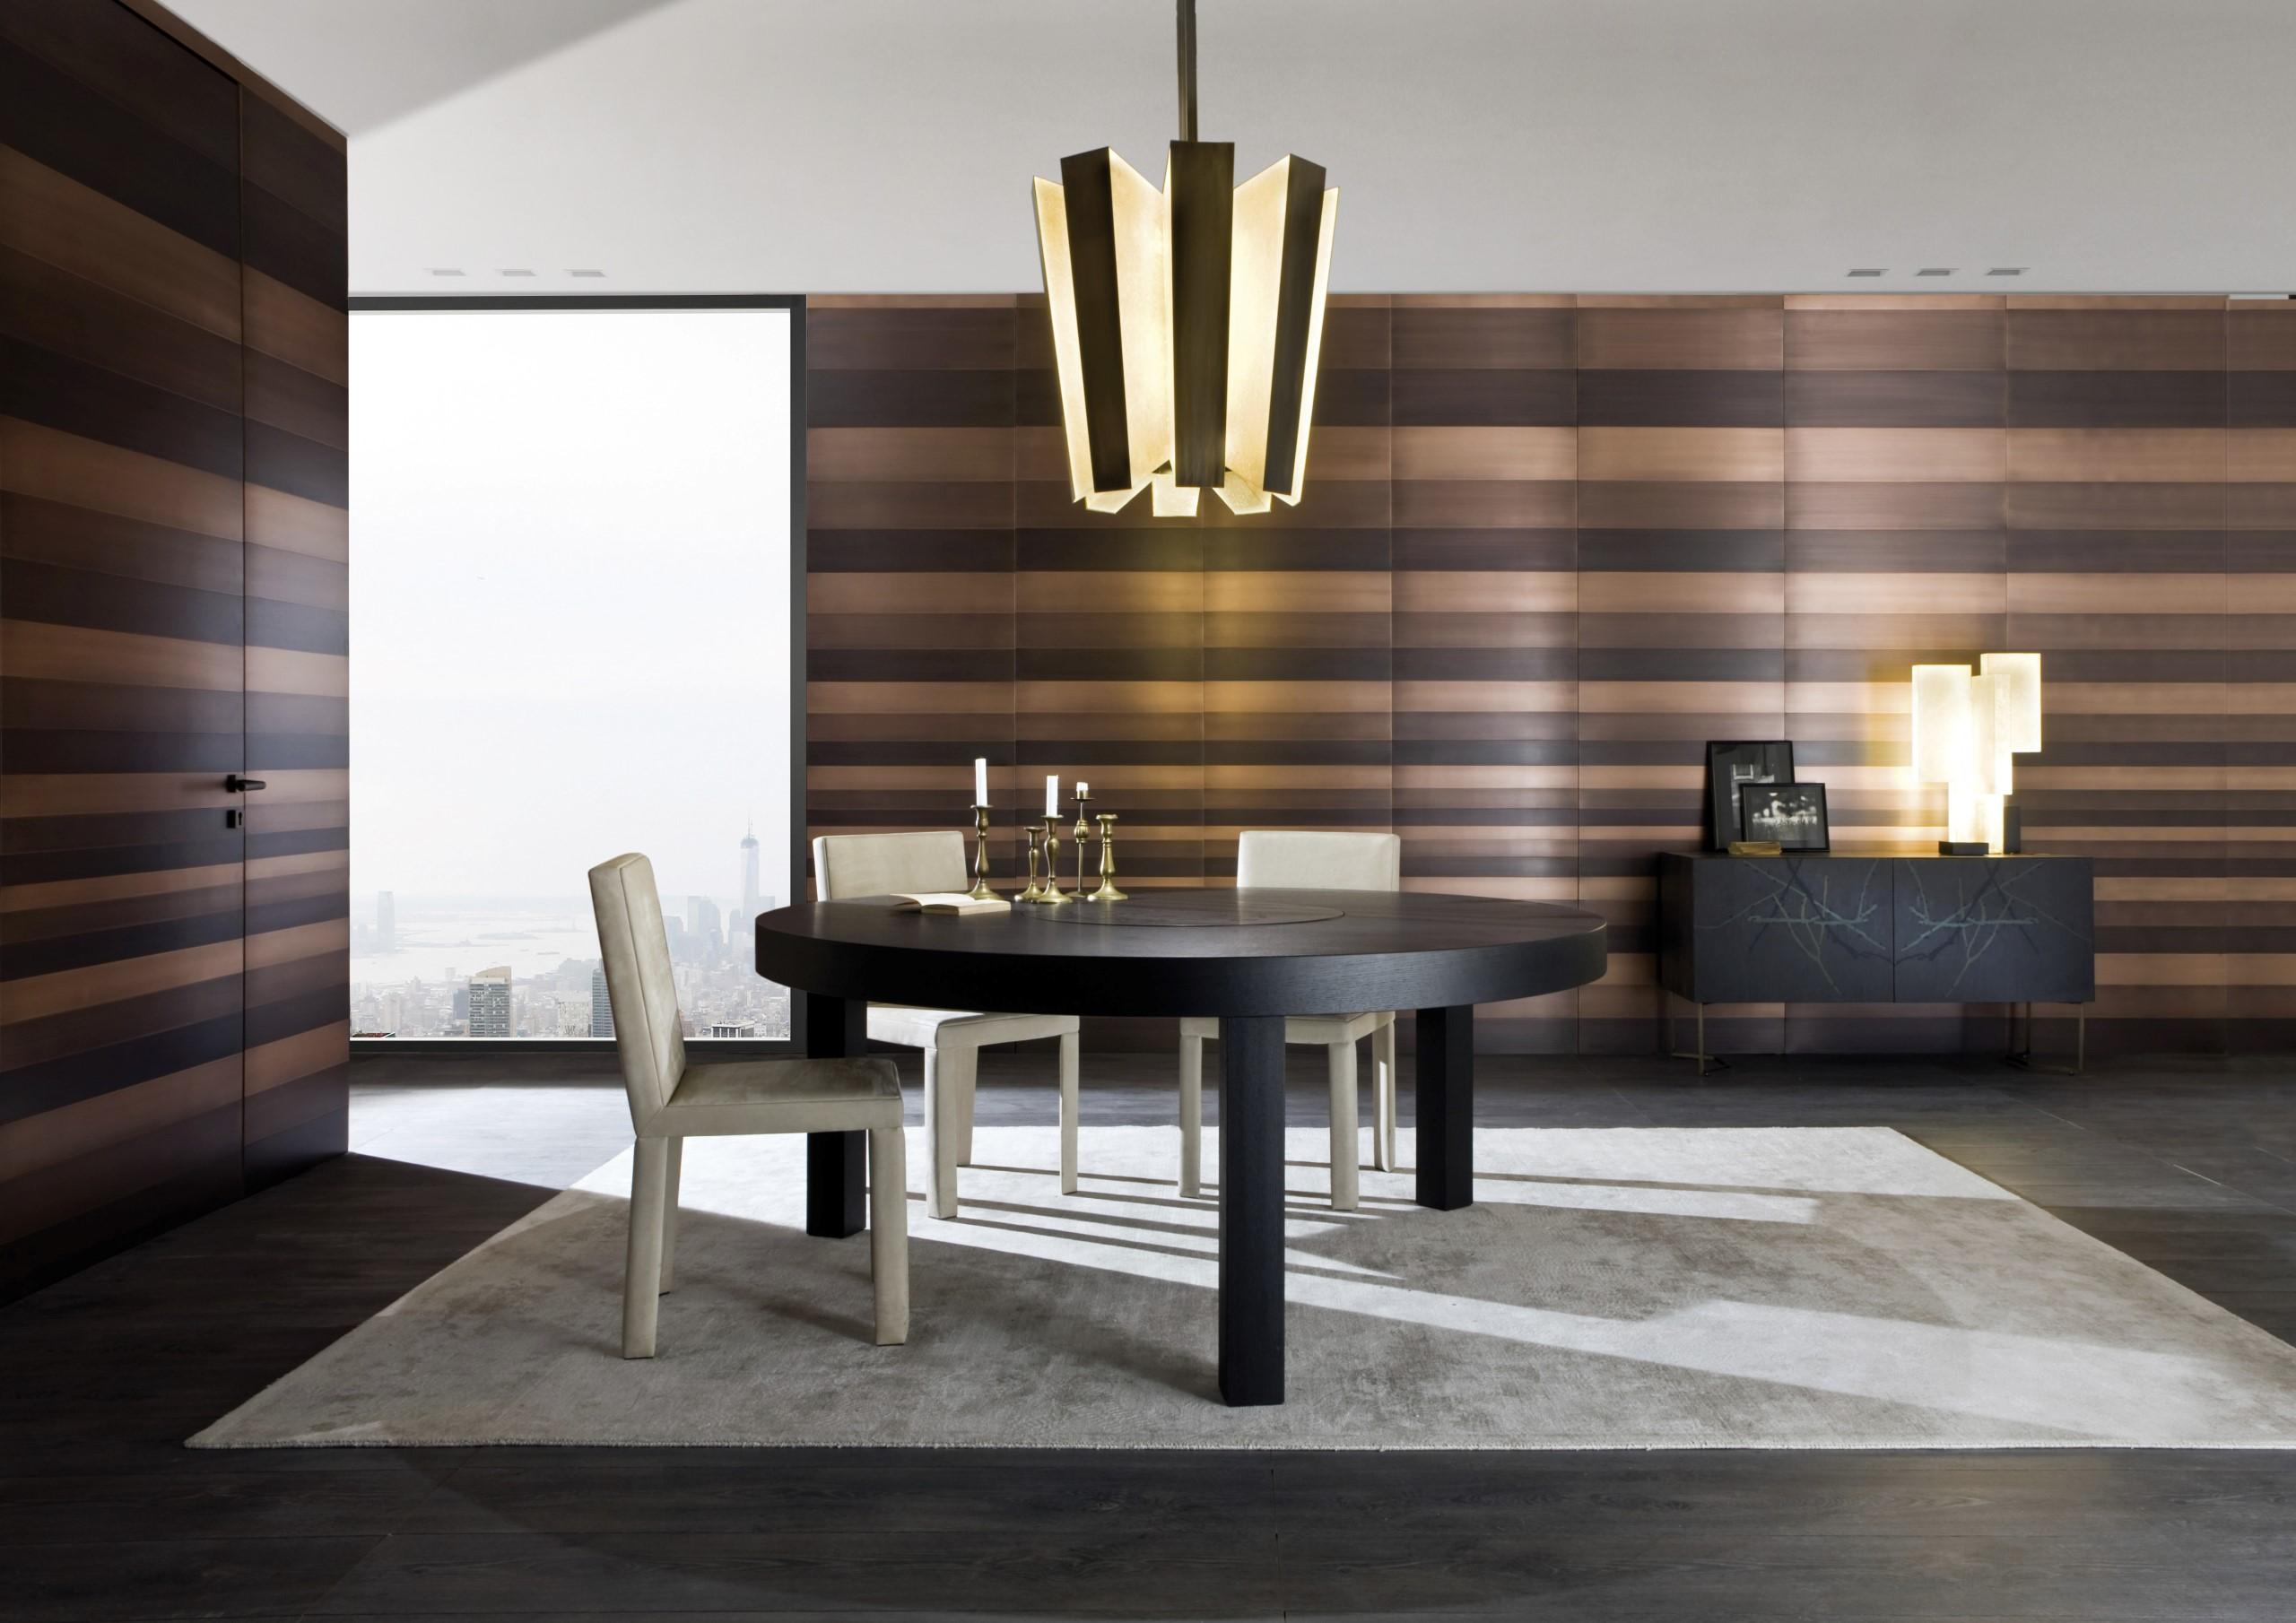 laurameroni limited edition artisanal products to furnish luxury homes with a modern end exclusive interior design